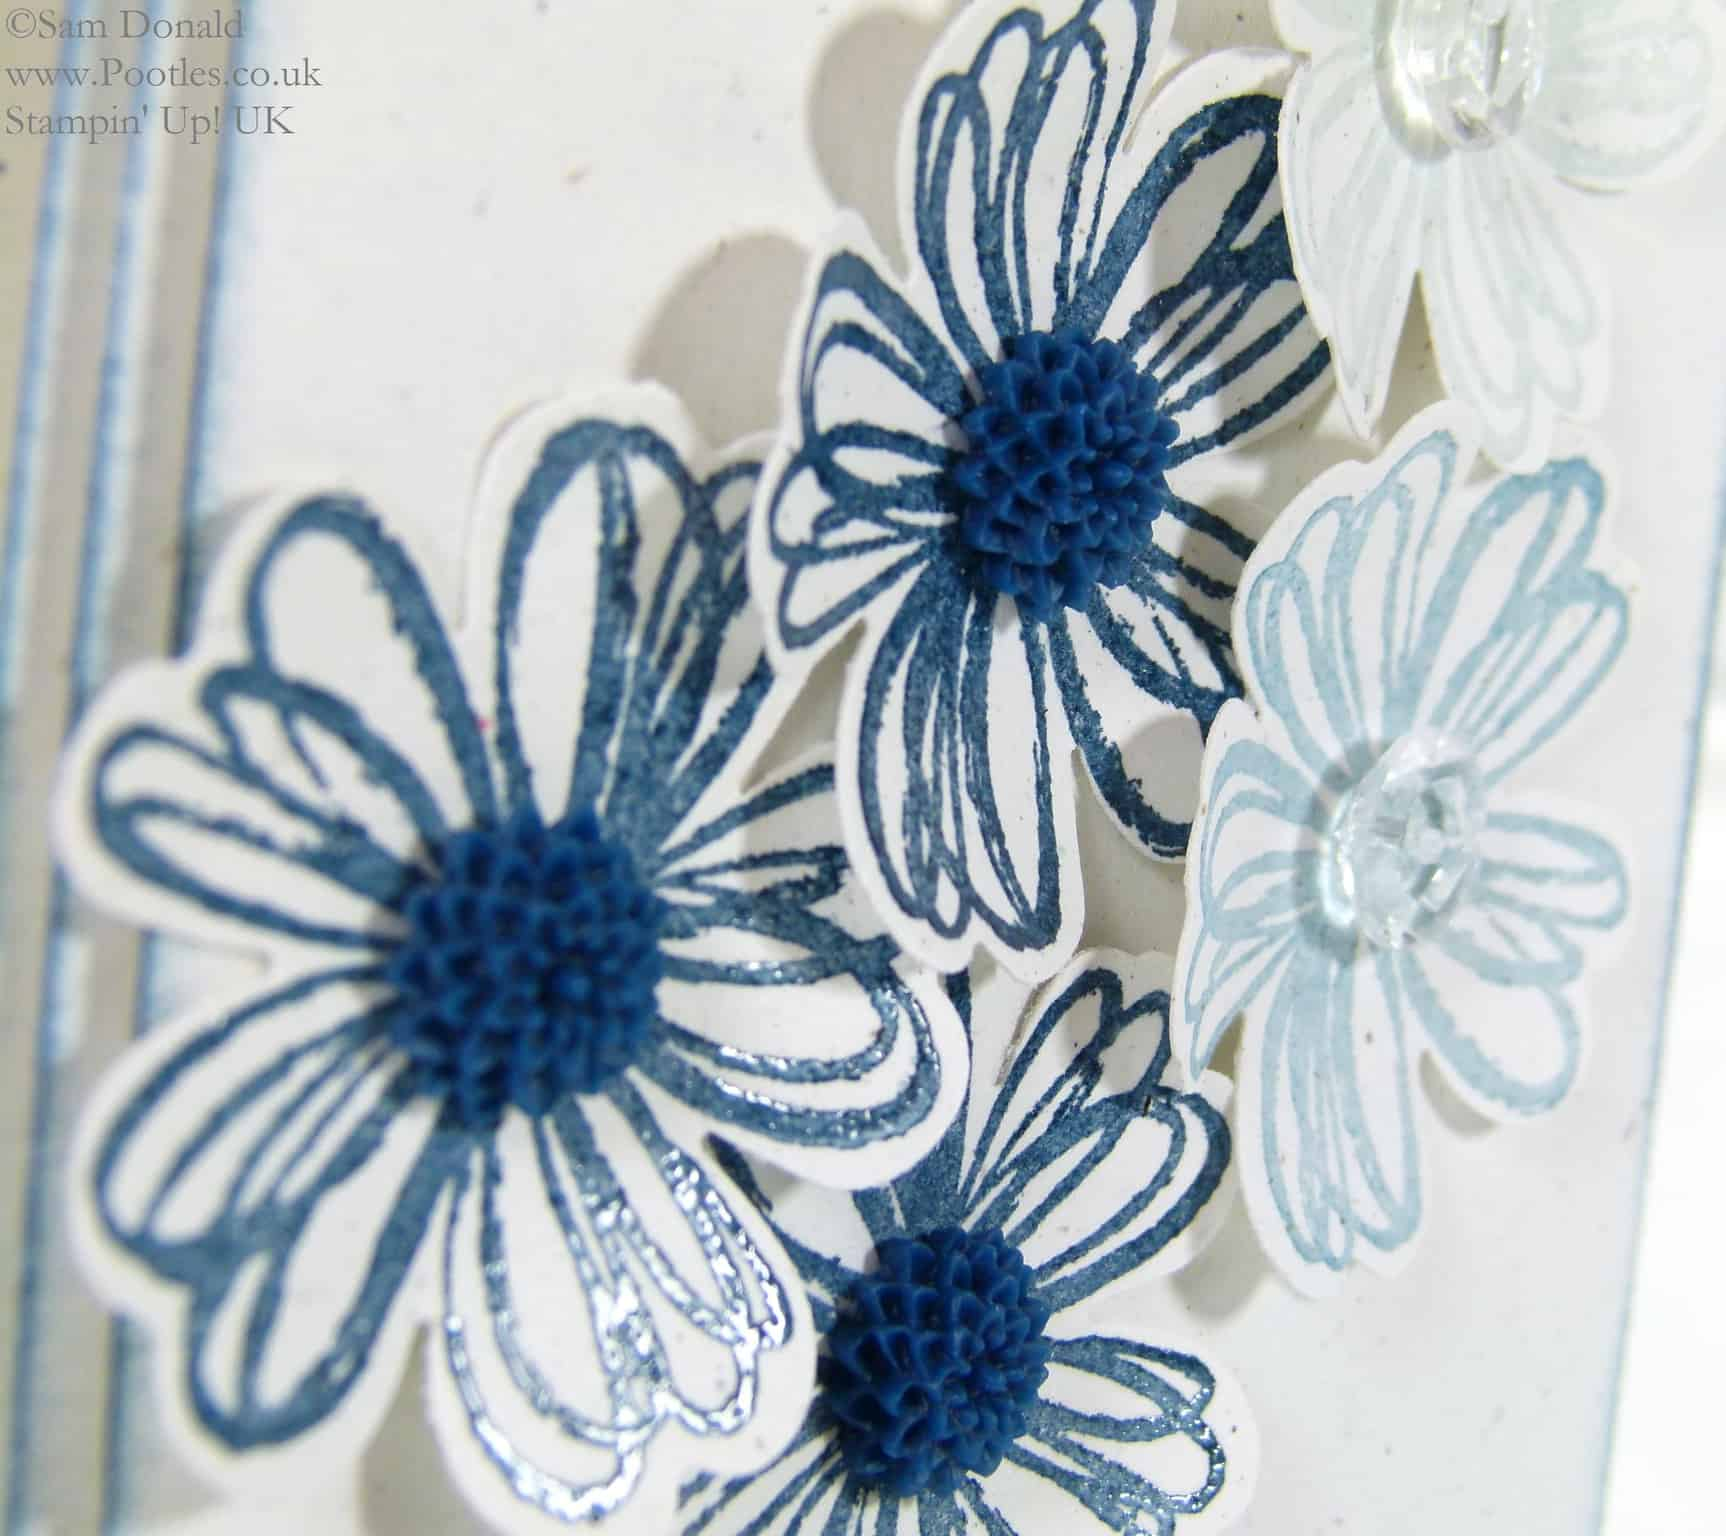 POOTLES Beautiful Blue Florals using Stampin' Up! UK Flower Shop Bundle flowers close up